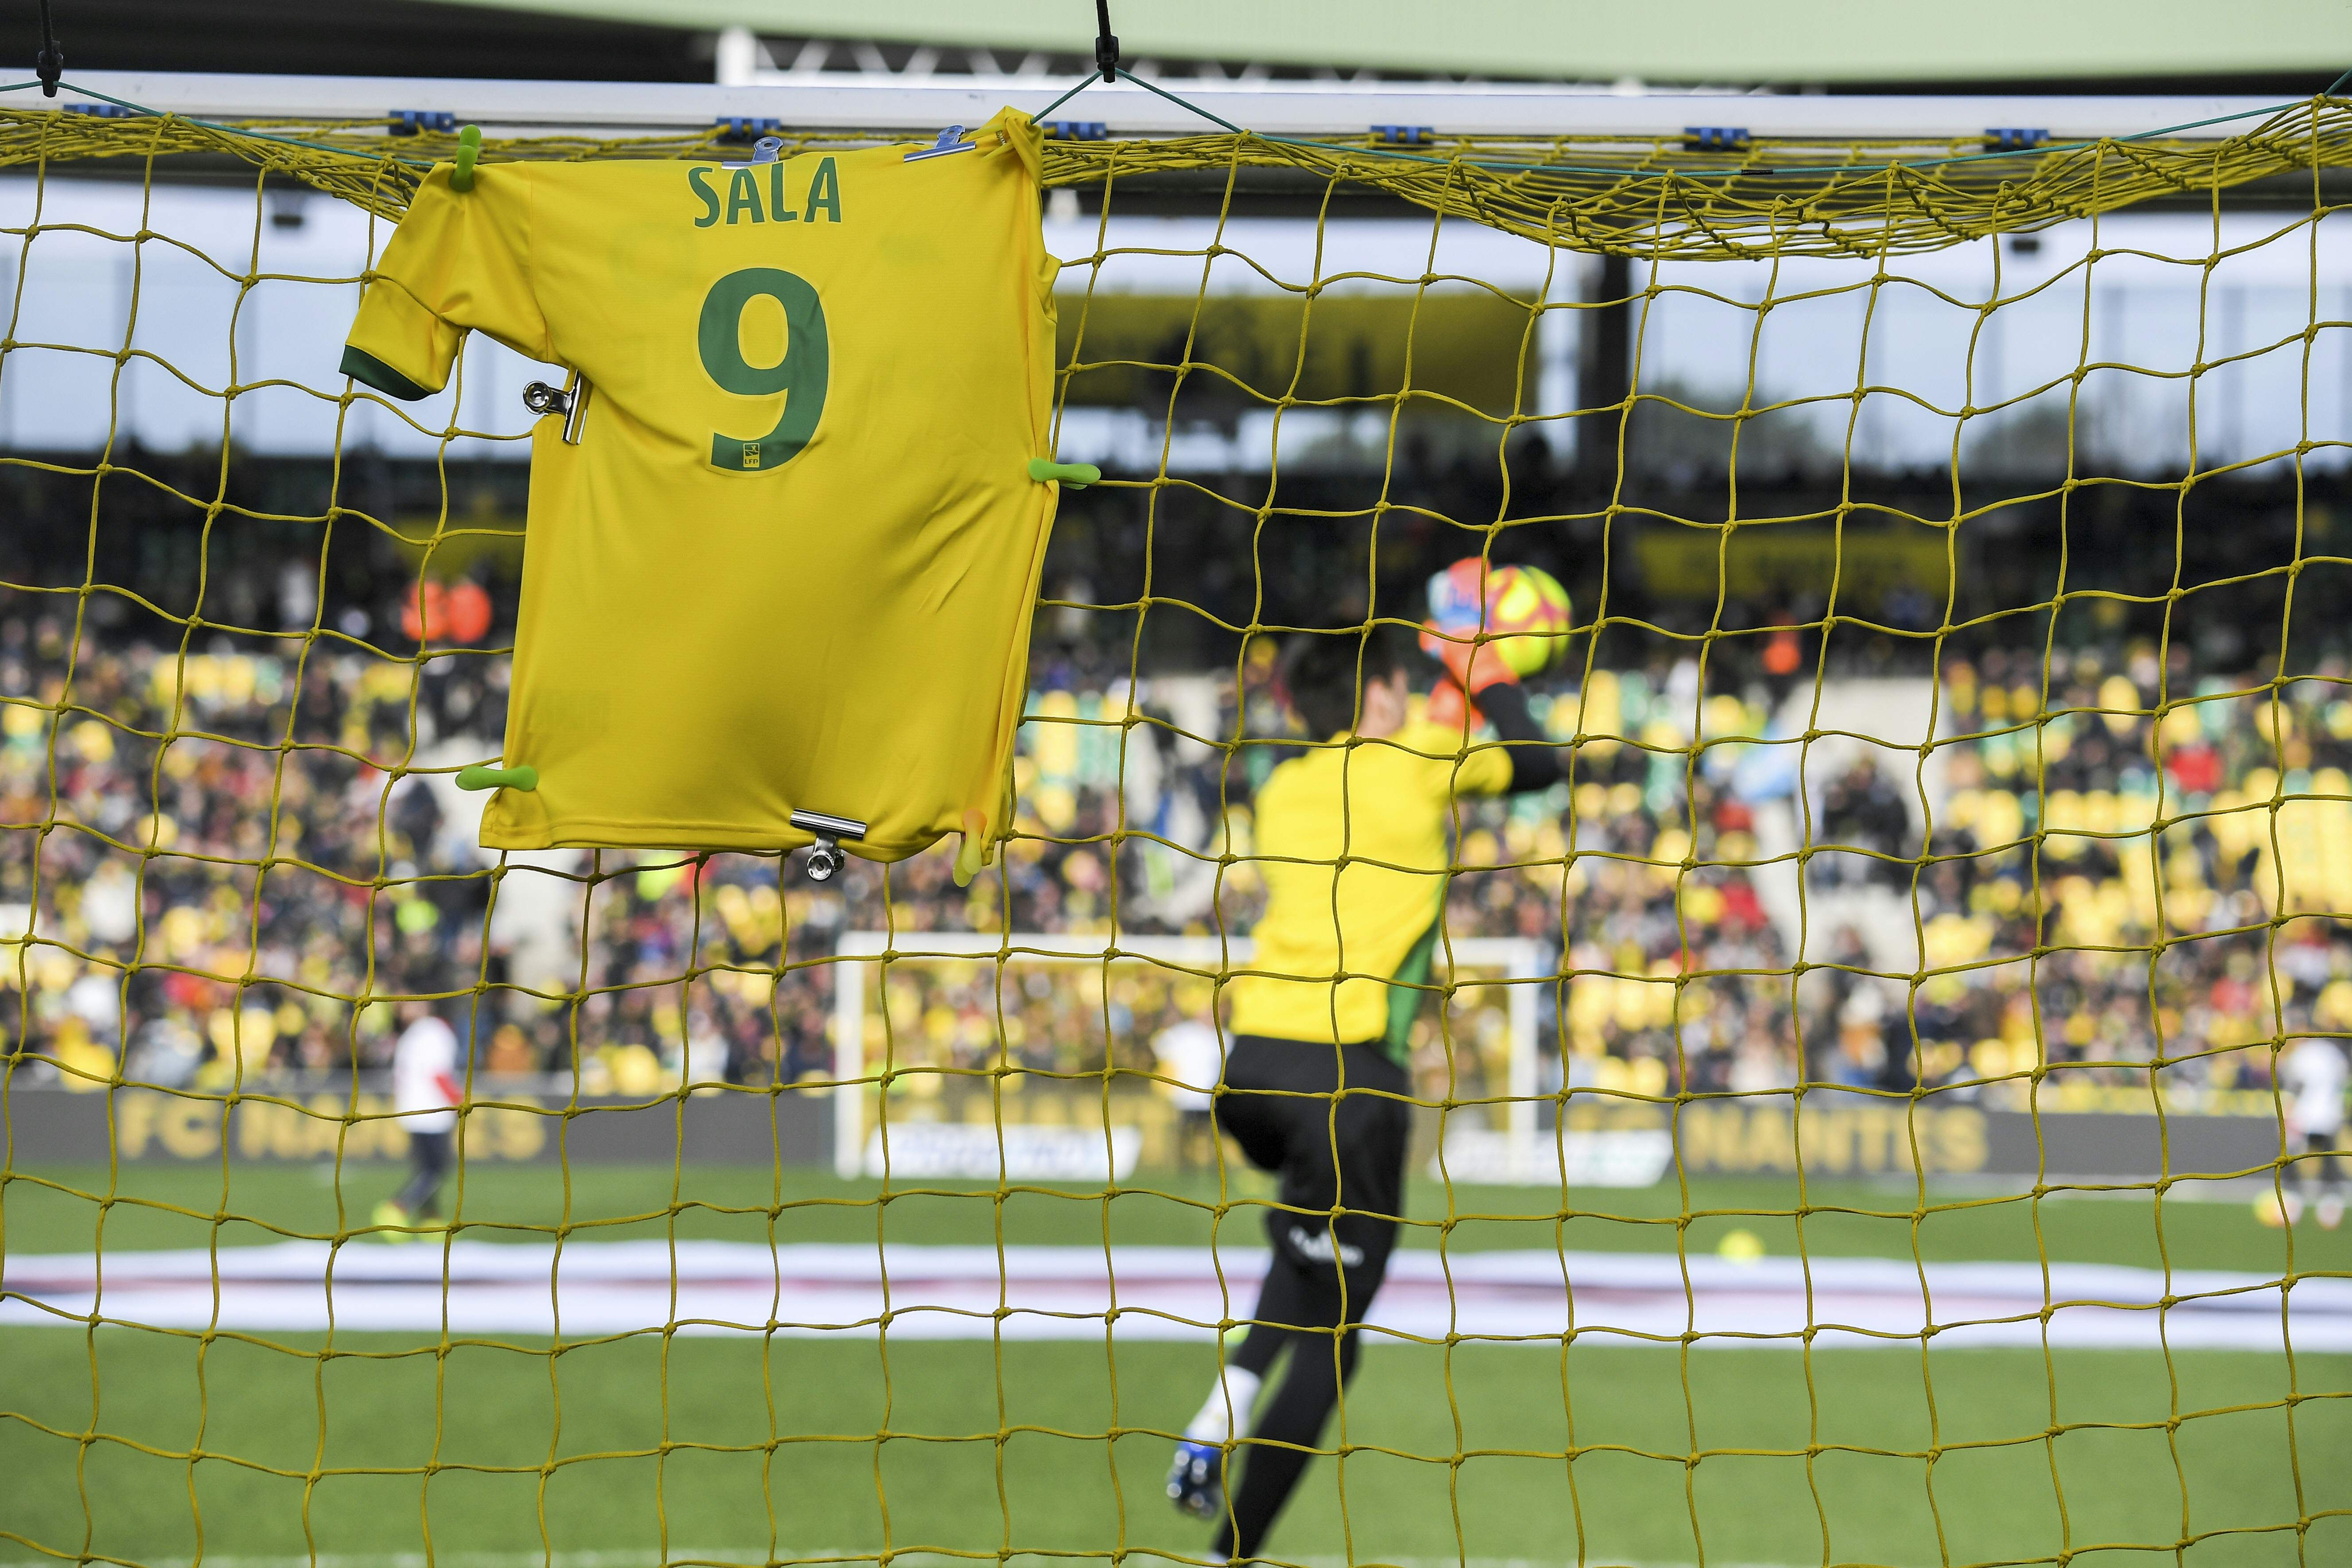 A #9 jersey is displayed on the goal in memory of late Argentinian forward Emiliano Sala prior to the French L1 football match between FC Nantes and Nimes Olympique at the La Beaujoire stadium in Nantes, western France on February 10, 2019. - FC Nantes football club announced on February 8, 2019 that it will freeze the #9 jersey as a tribute to Cardiff City and former Nantes footballer Emiliano Sala who died in a plane crash in the English Channel on January 21, 2019. (Photo by LOIC VENANCE / AFP)